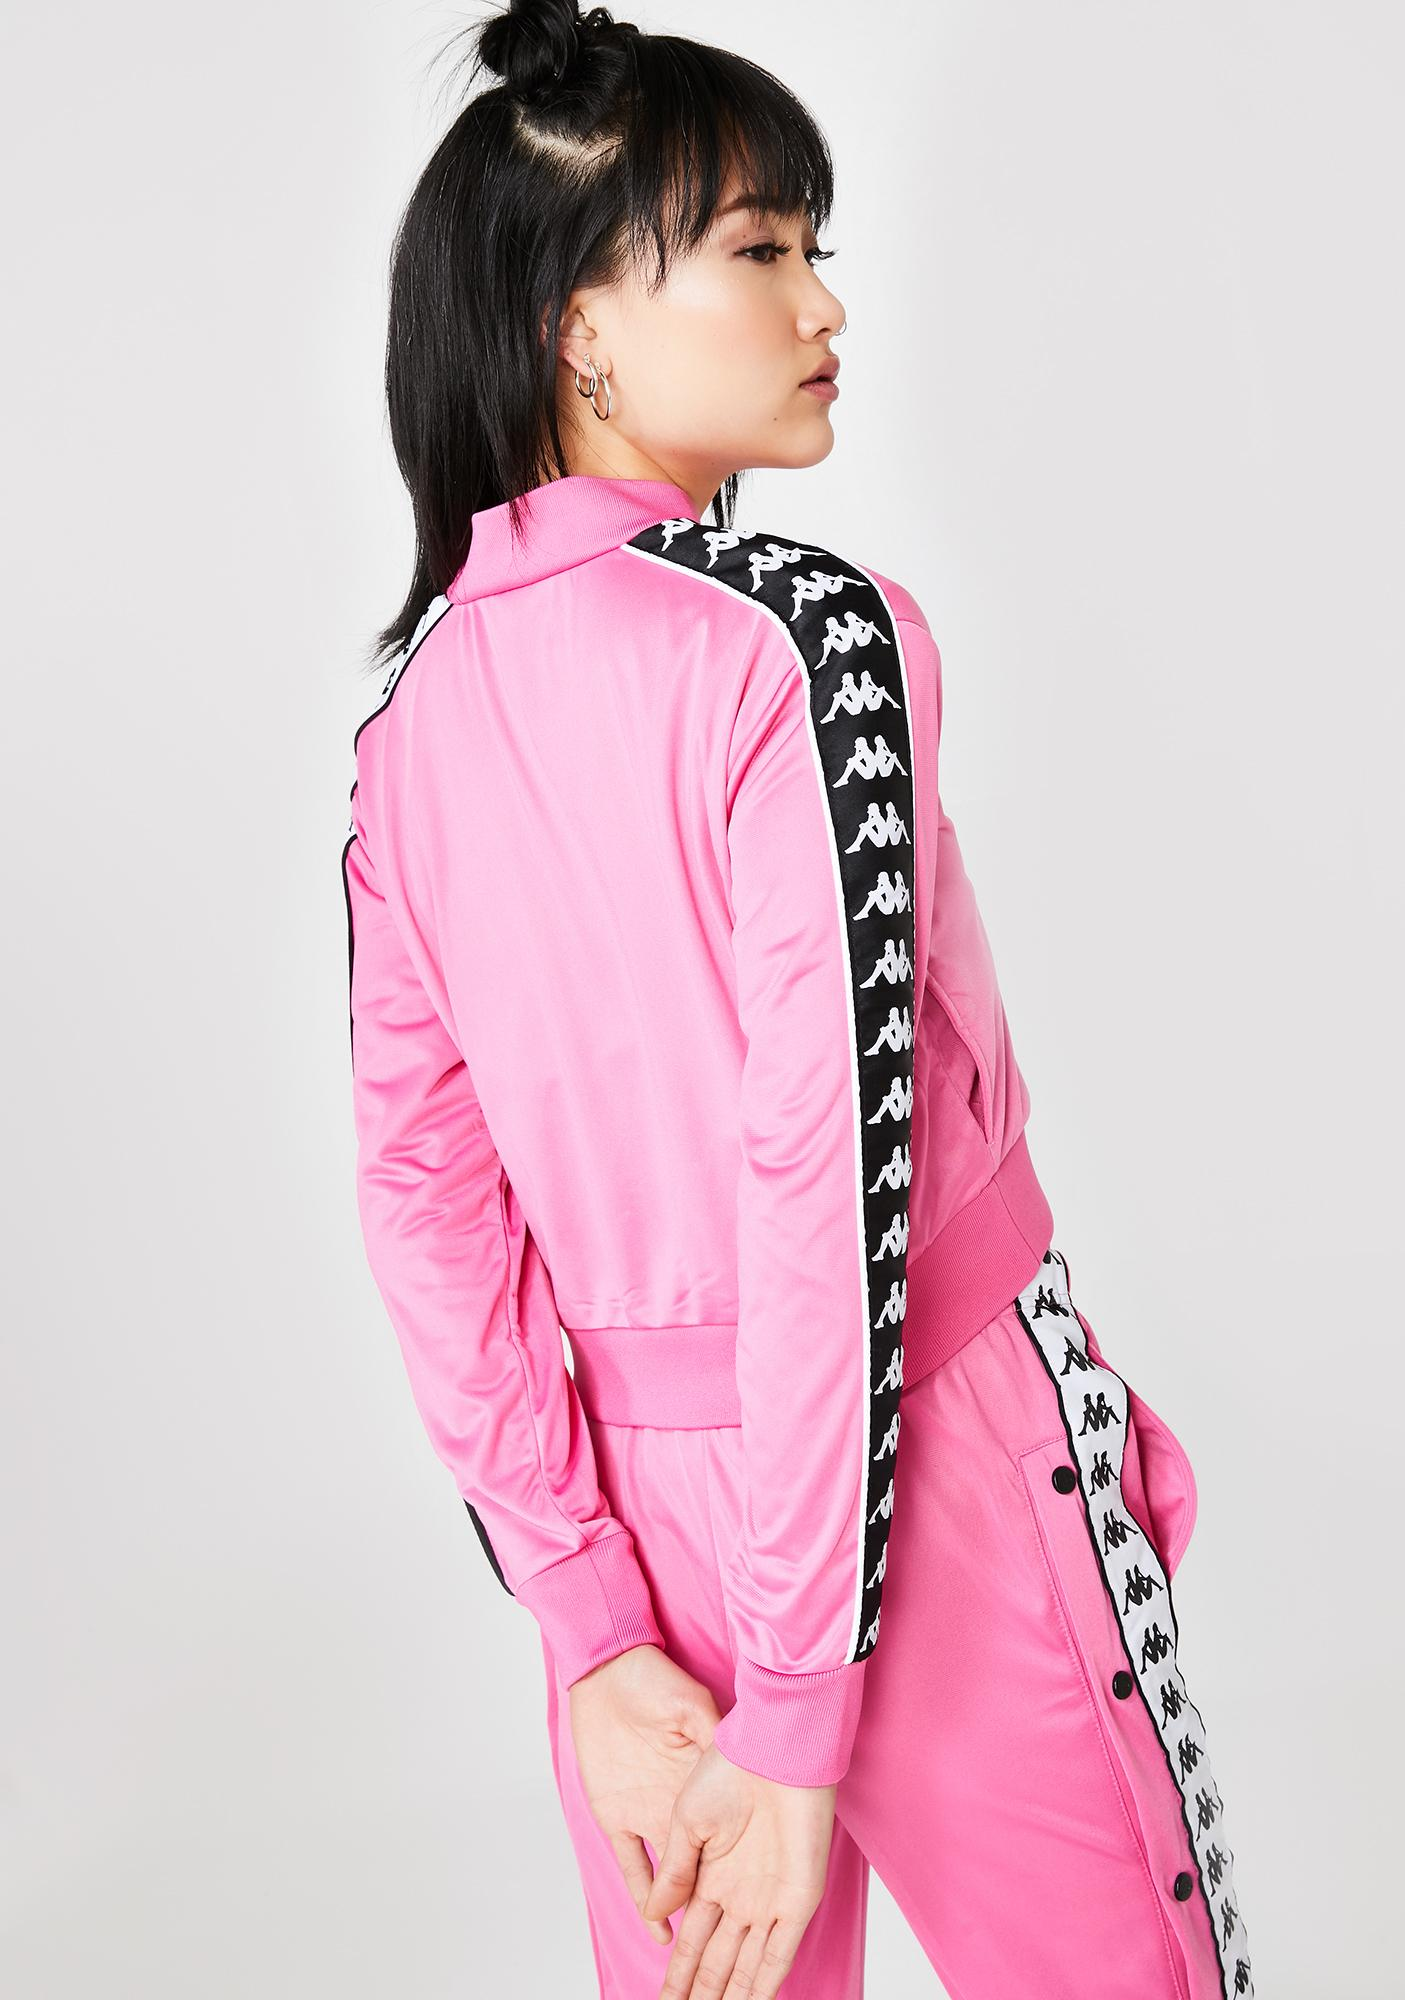 Sweet 222 Banda Asber Crop Jacket by Kappa